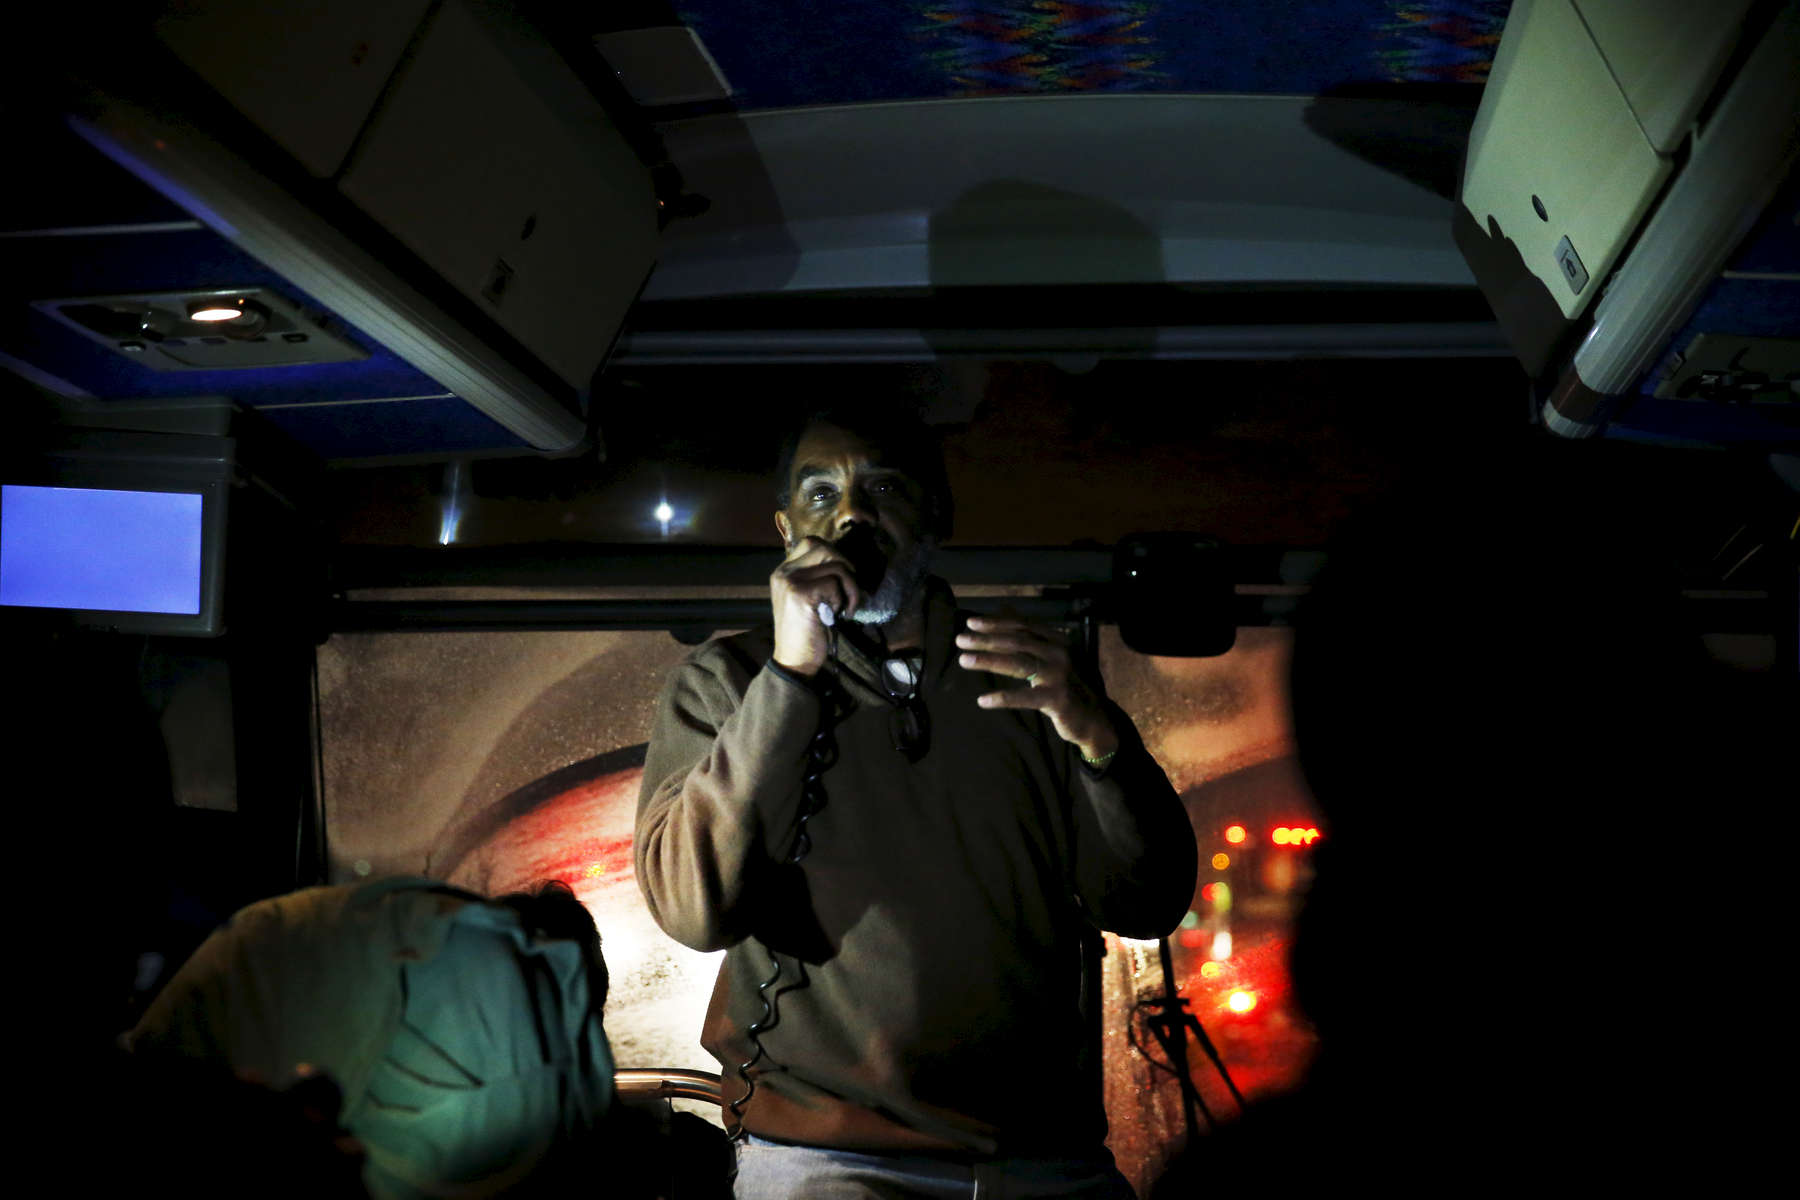 Journey To Selma -- 3/06/2015--At 2:13 am UMass Professor Tony Van Der Meer leads a spirited discussion after students watched Selma as they make the 25 hour journey by bus to Selma, Alabama March 6, 2015. Jessica Rinaldi/Globe StaffTopic: Reporter: